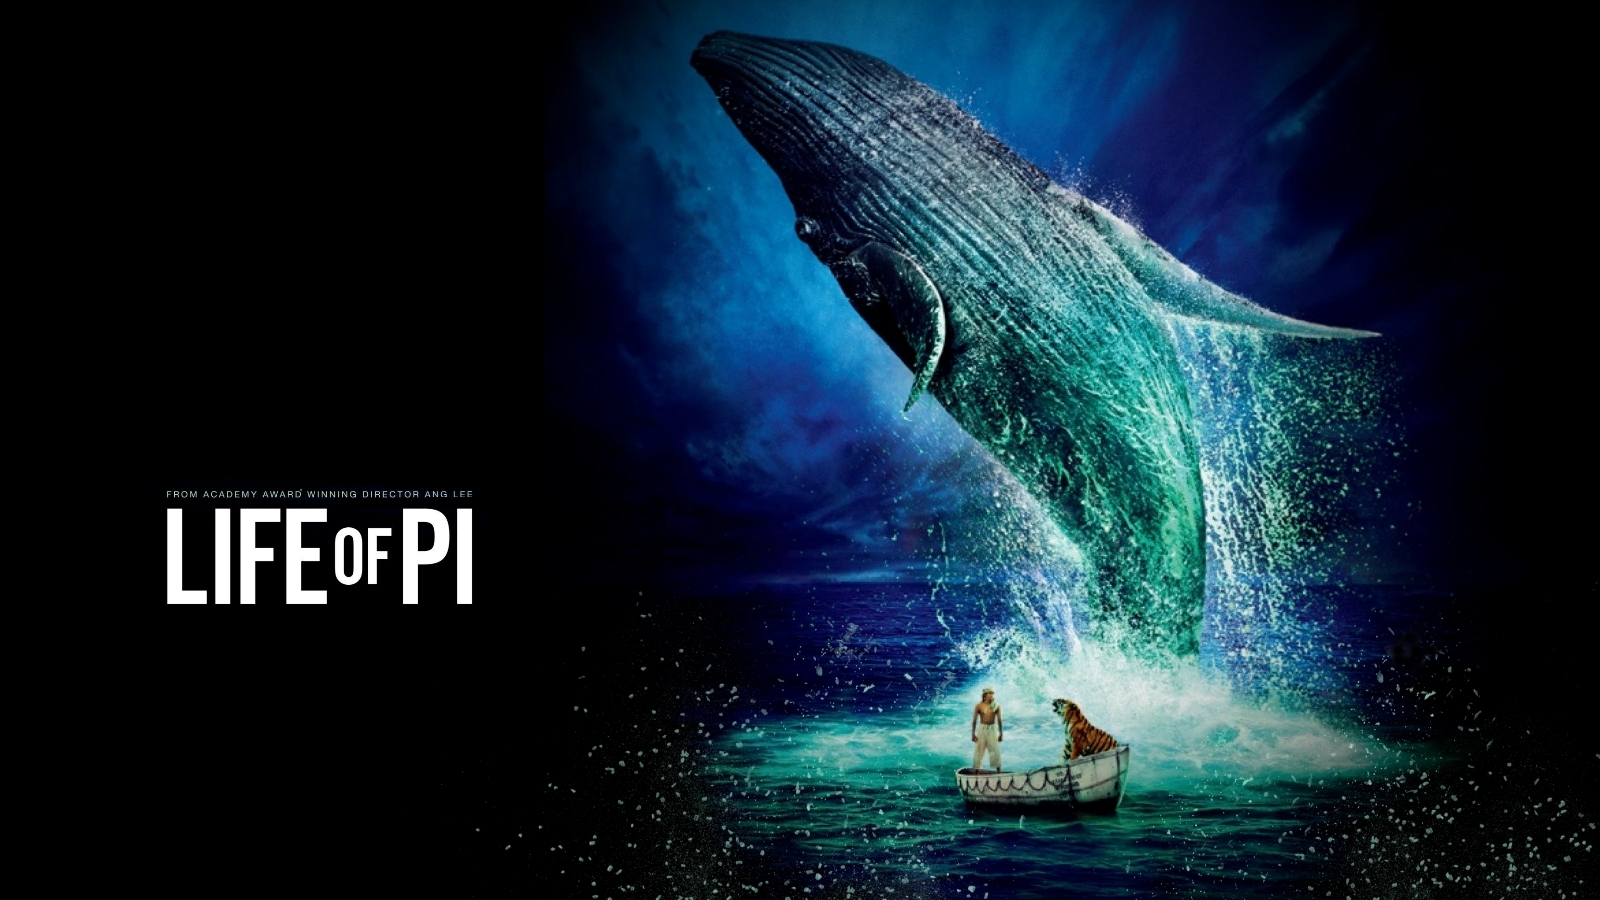 Download life of pi movie wallpaper 1600x900 for Life of pi name